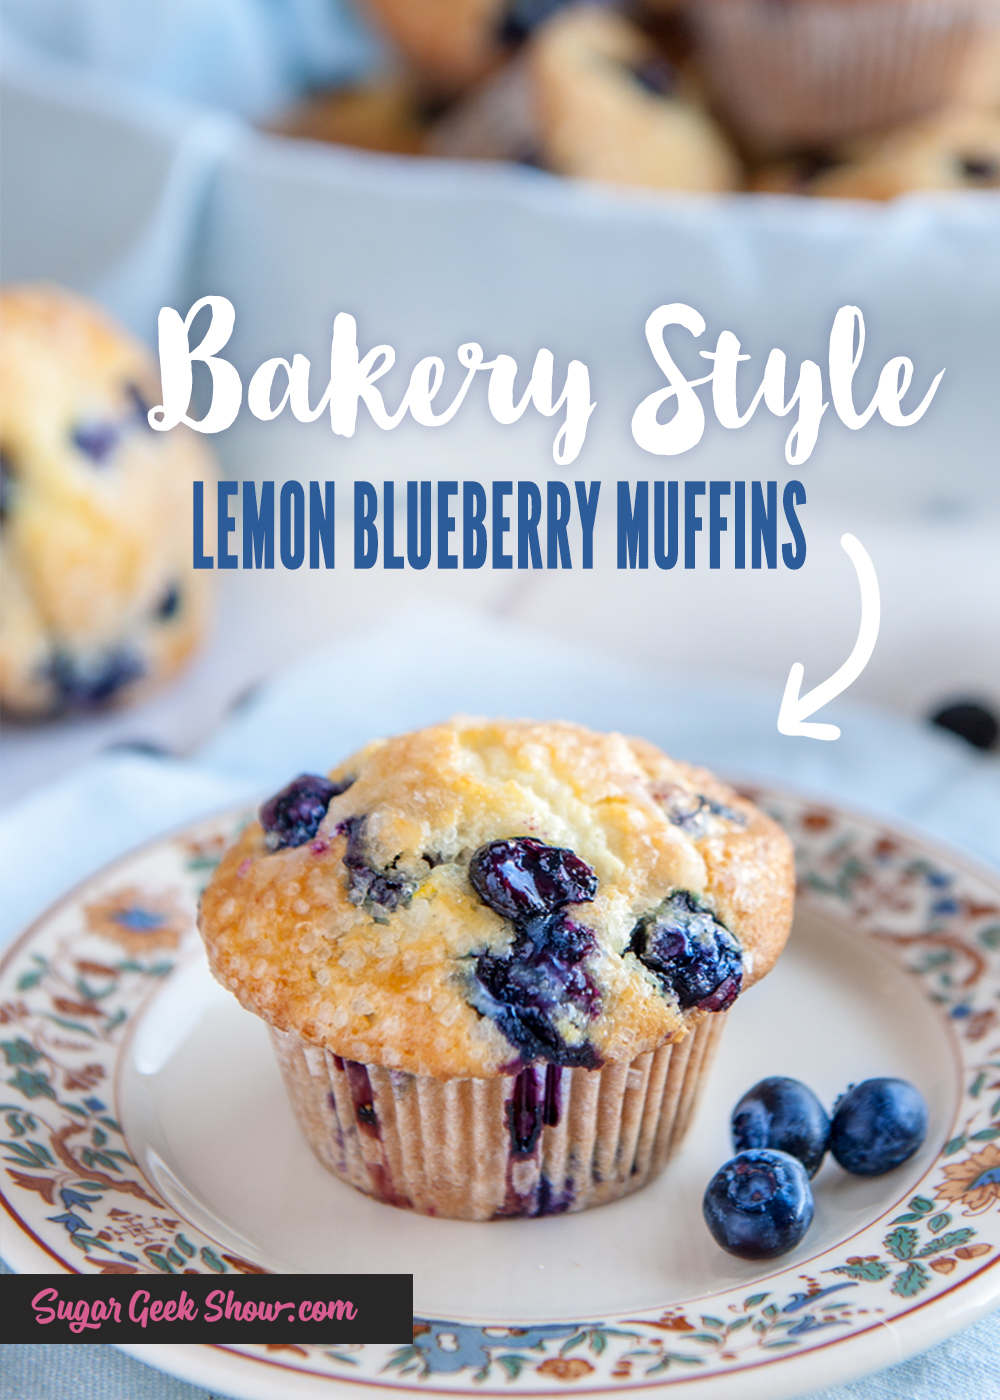 Lemon Blueberry Muffin Recipe Bakery Style Sugar Geek Show Recipe In 2020 Lemon Blueberry Muffins Blue Berry Muffins Lemon Blueberry Muffins Recipe